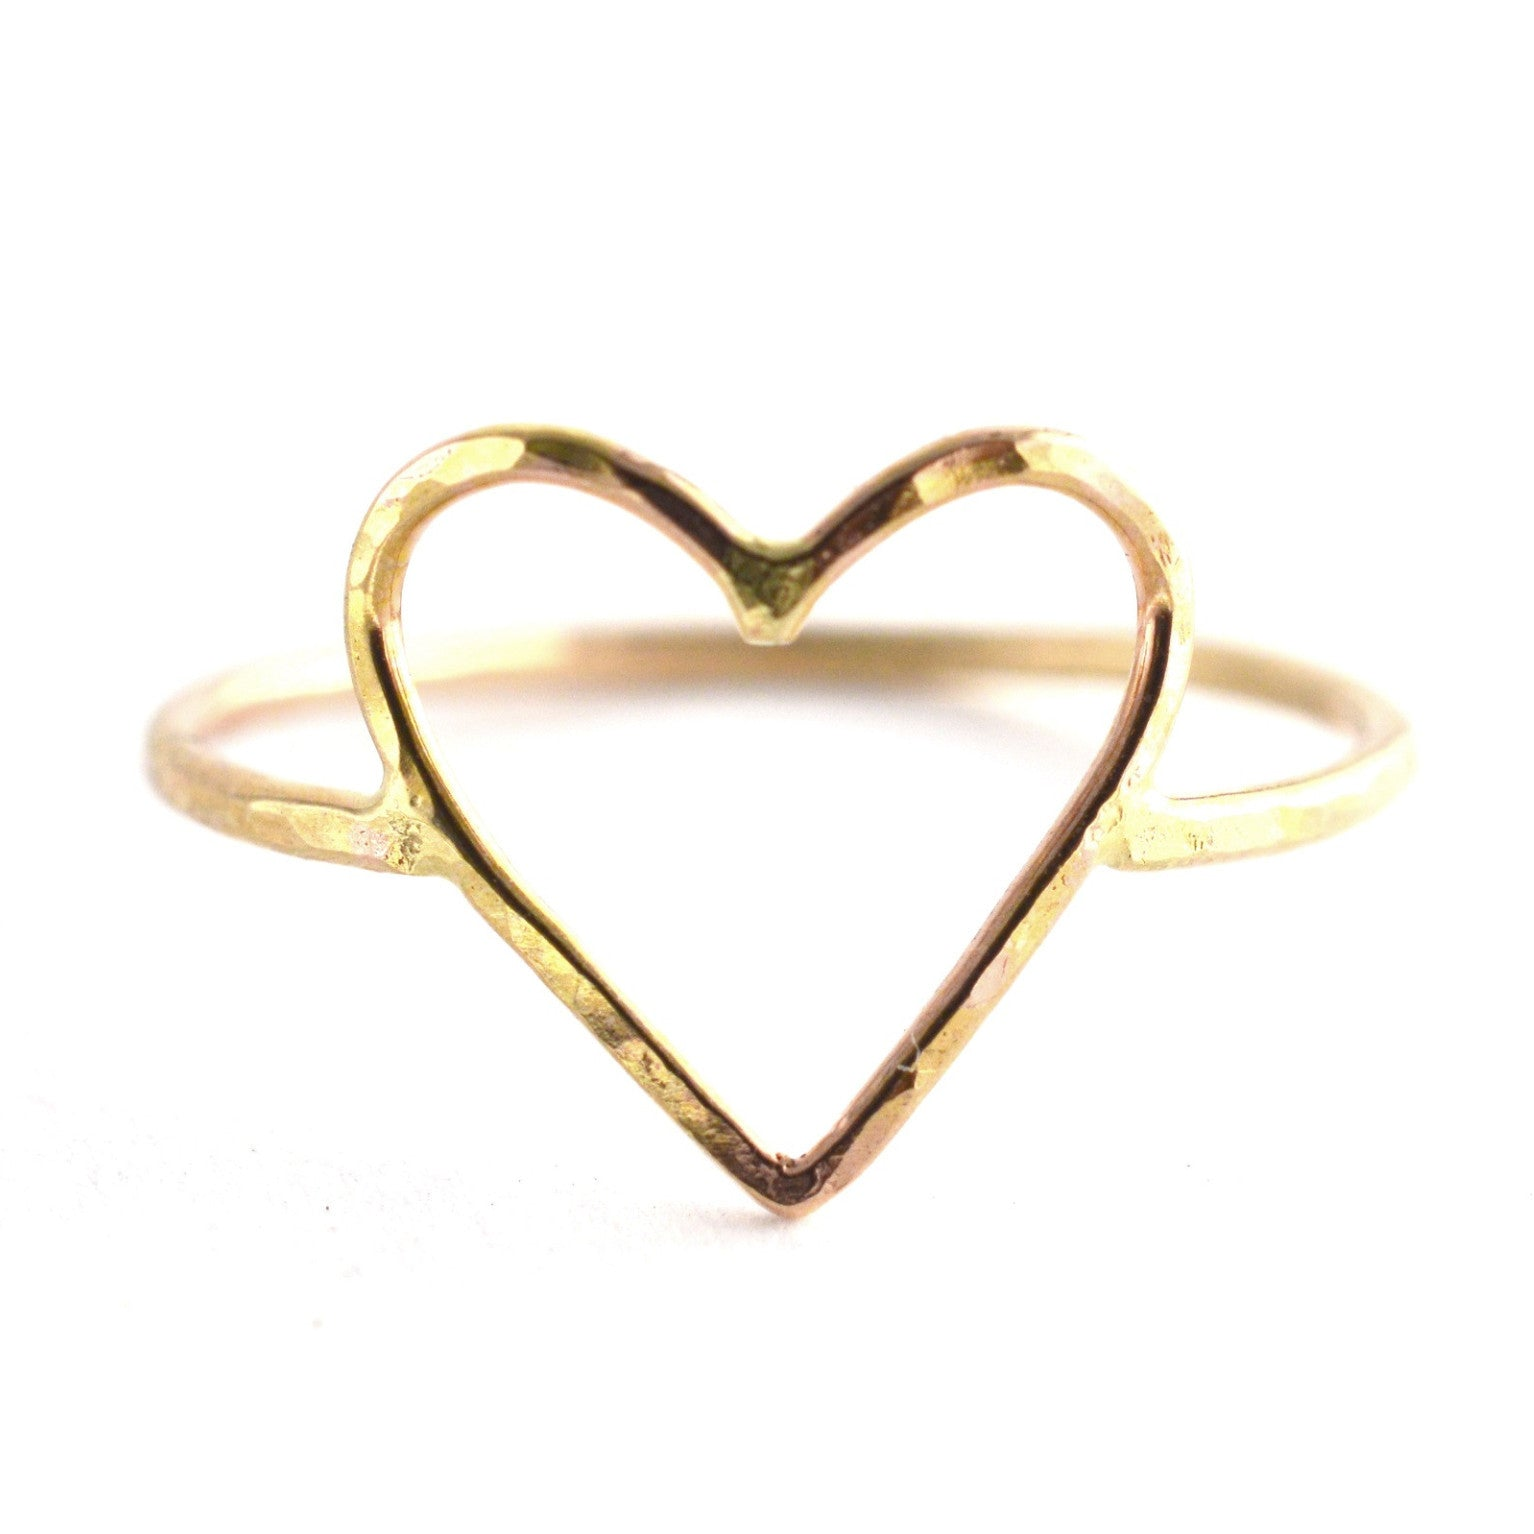 handmade heart ring, aquarianthoughts jewelry